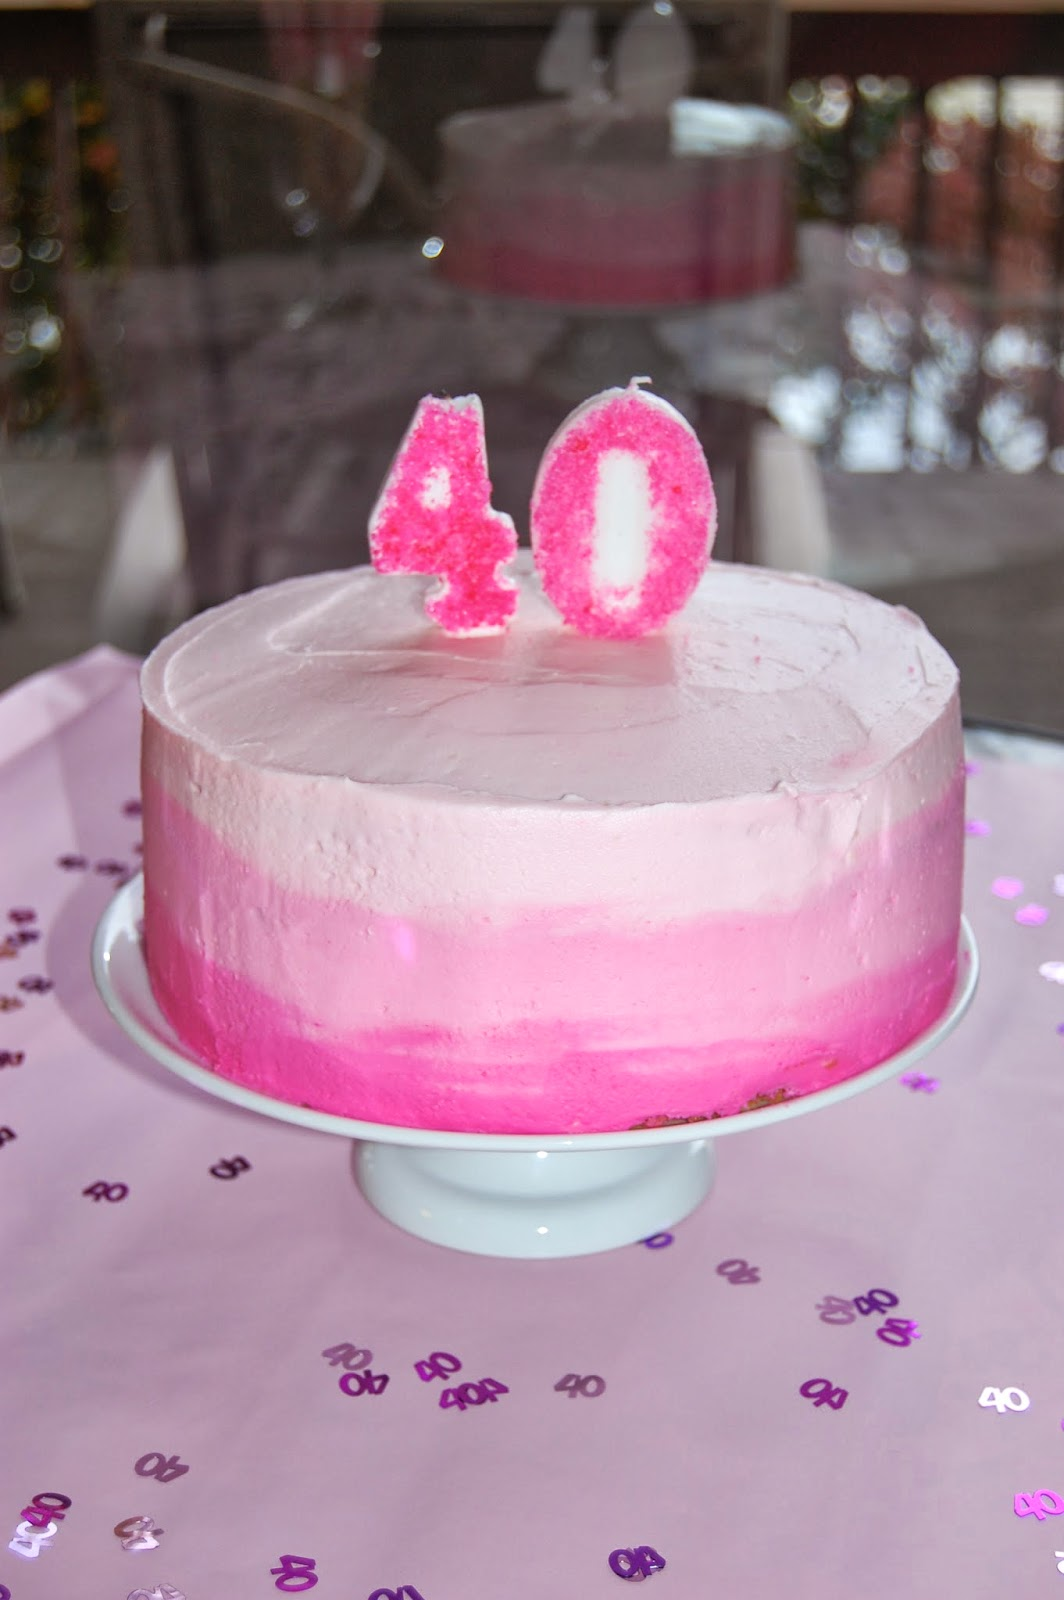 Cook Create Consume How To Make A Pink Ombre Cake